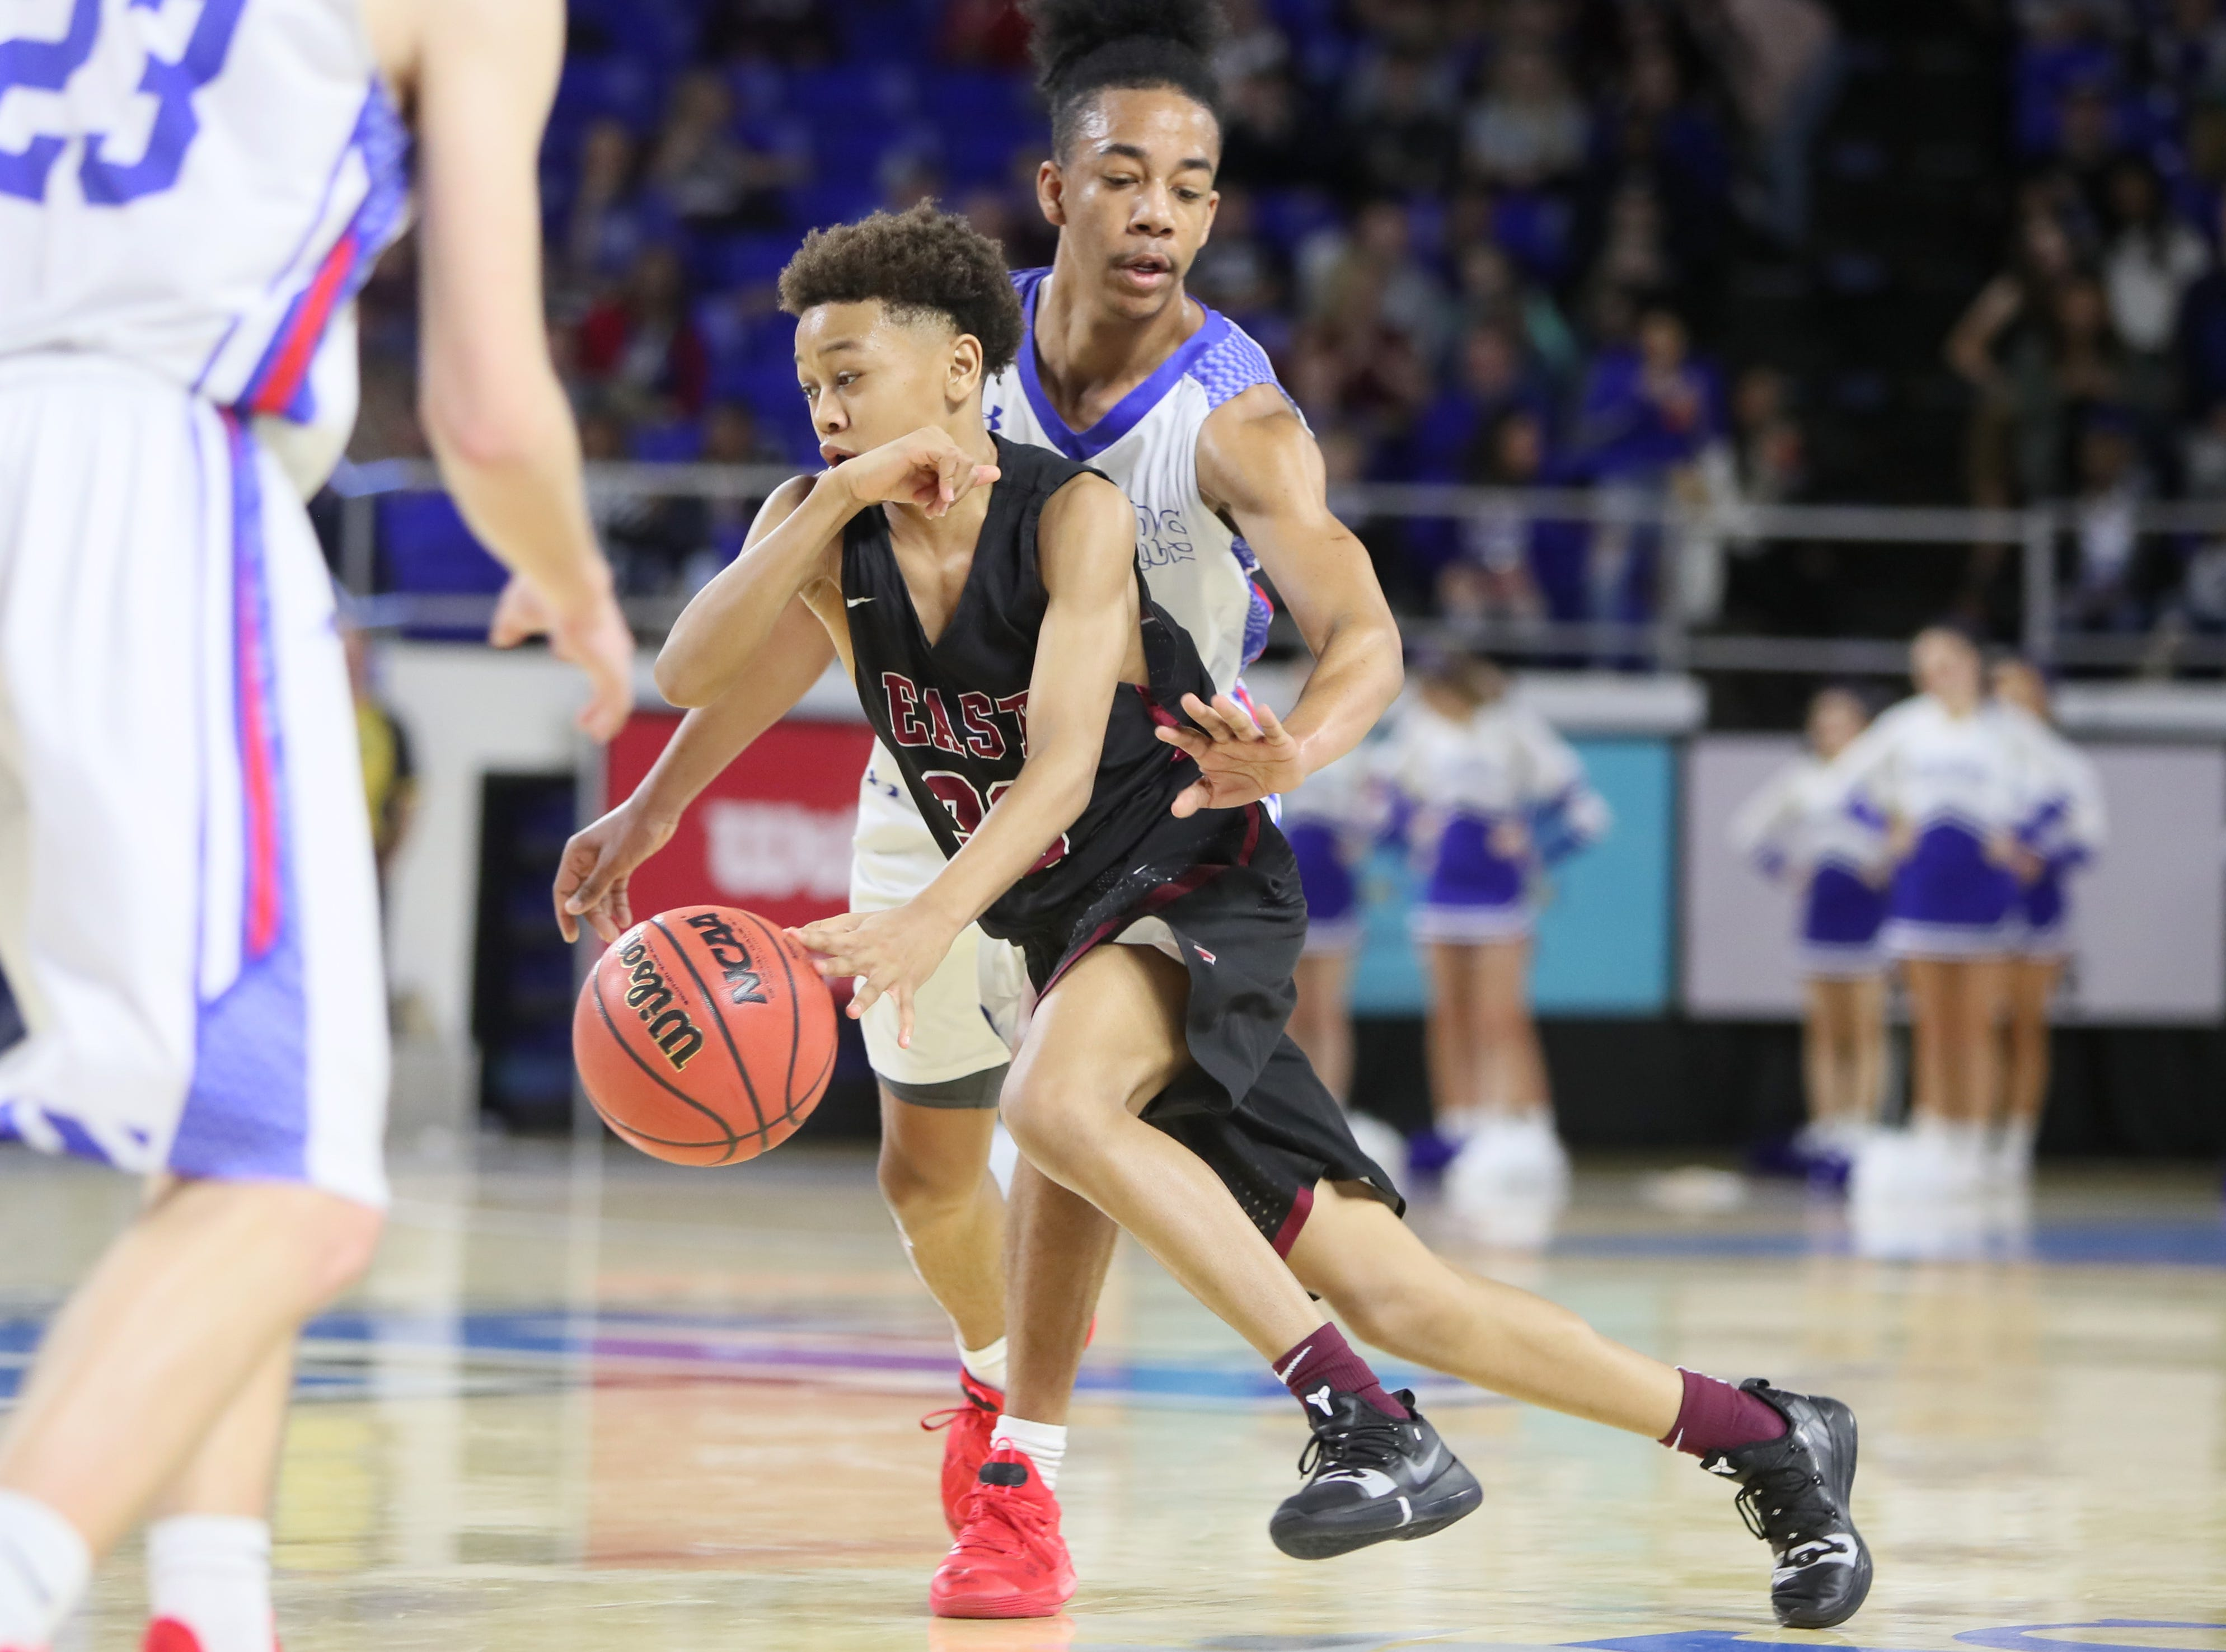 Memphis East's Terrence Jacobs drives past Cleveland's Jacobi Wood during the TSSAA Division I basketball state tournament at the Murphy Center in Murfreesboro, Tenn. on Thursday, March 14, 2019.